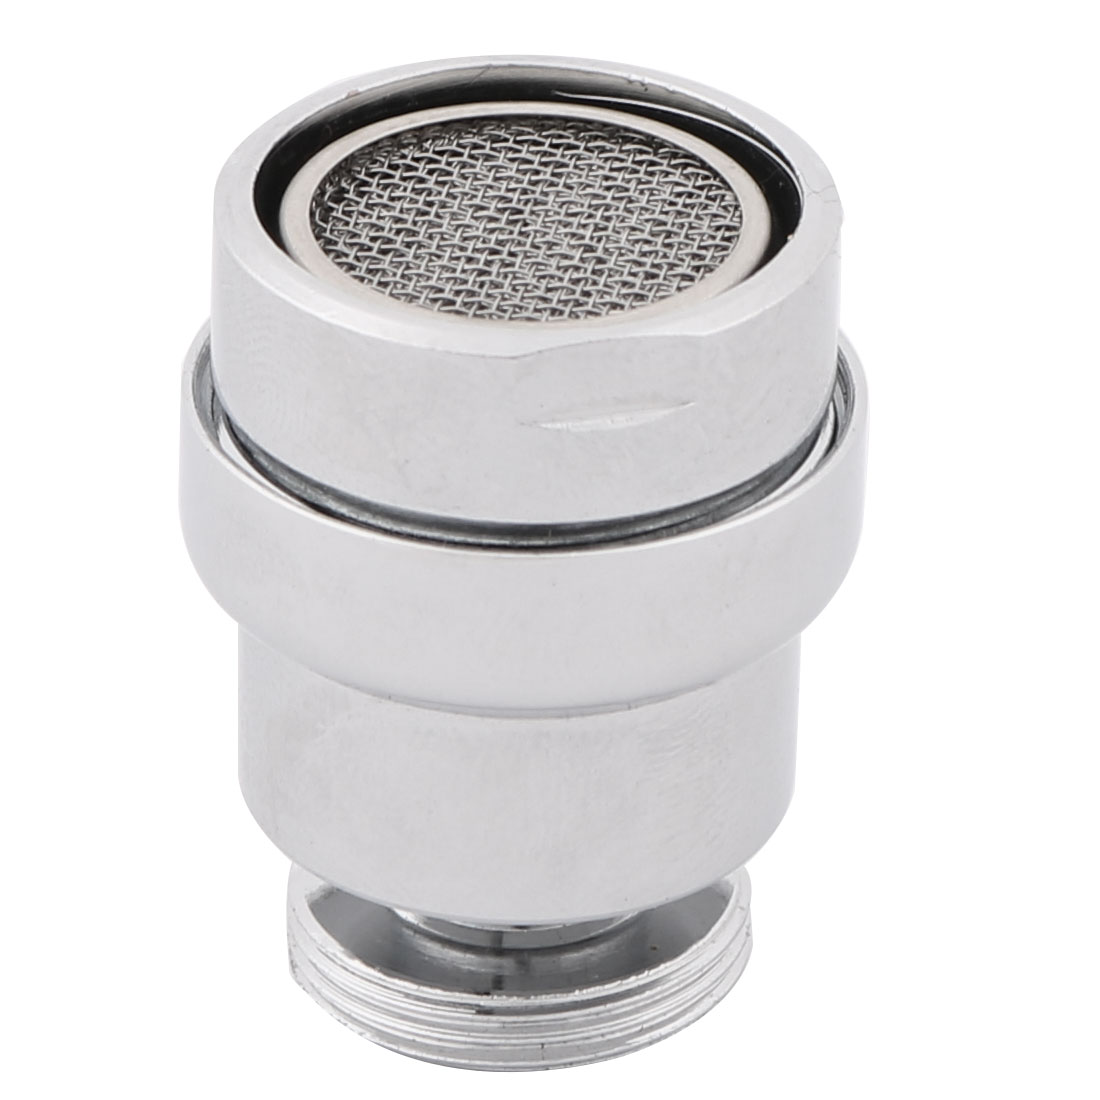 Home Swivel Water Filtration Saving Diffuser Fitting Faucet Filter Tap Aerater